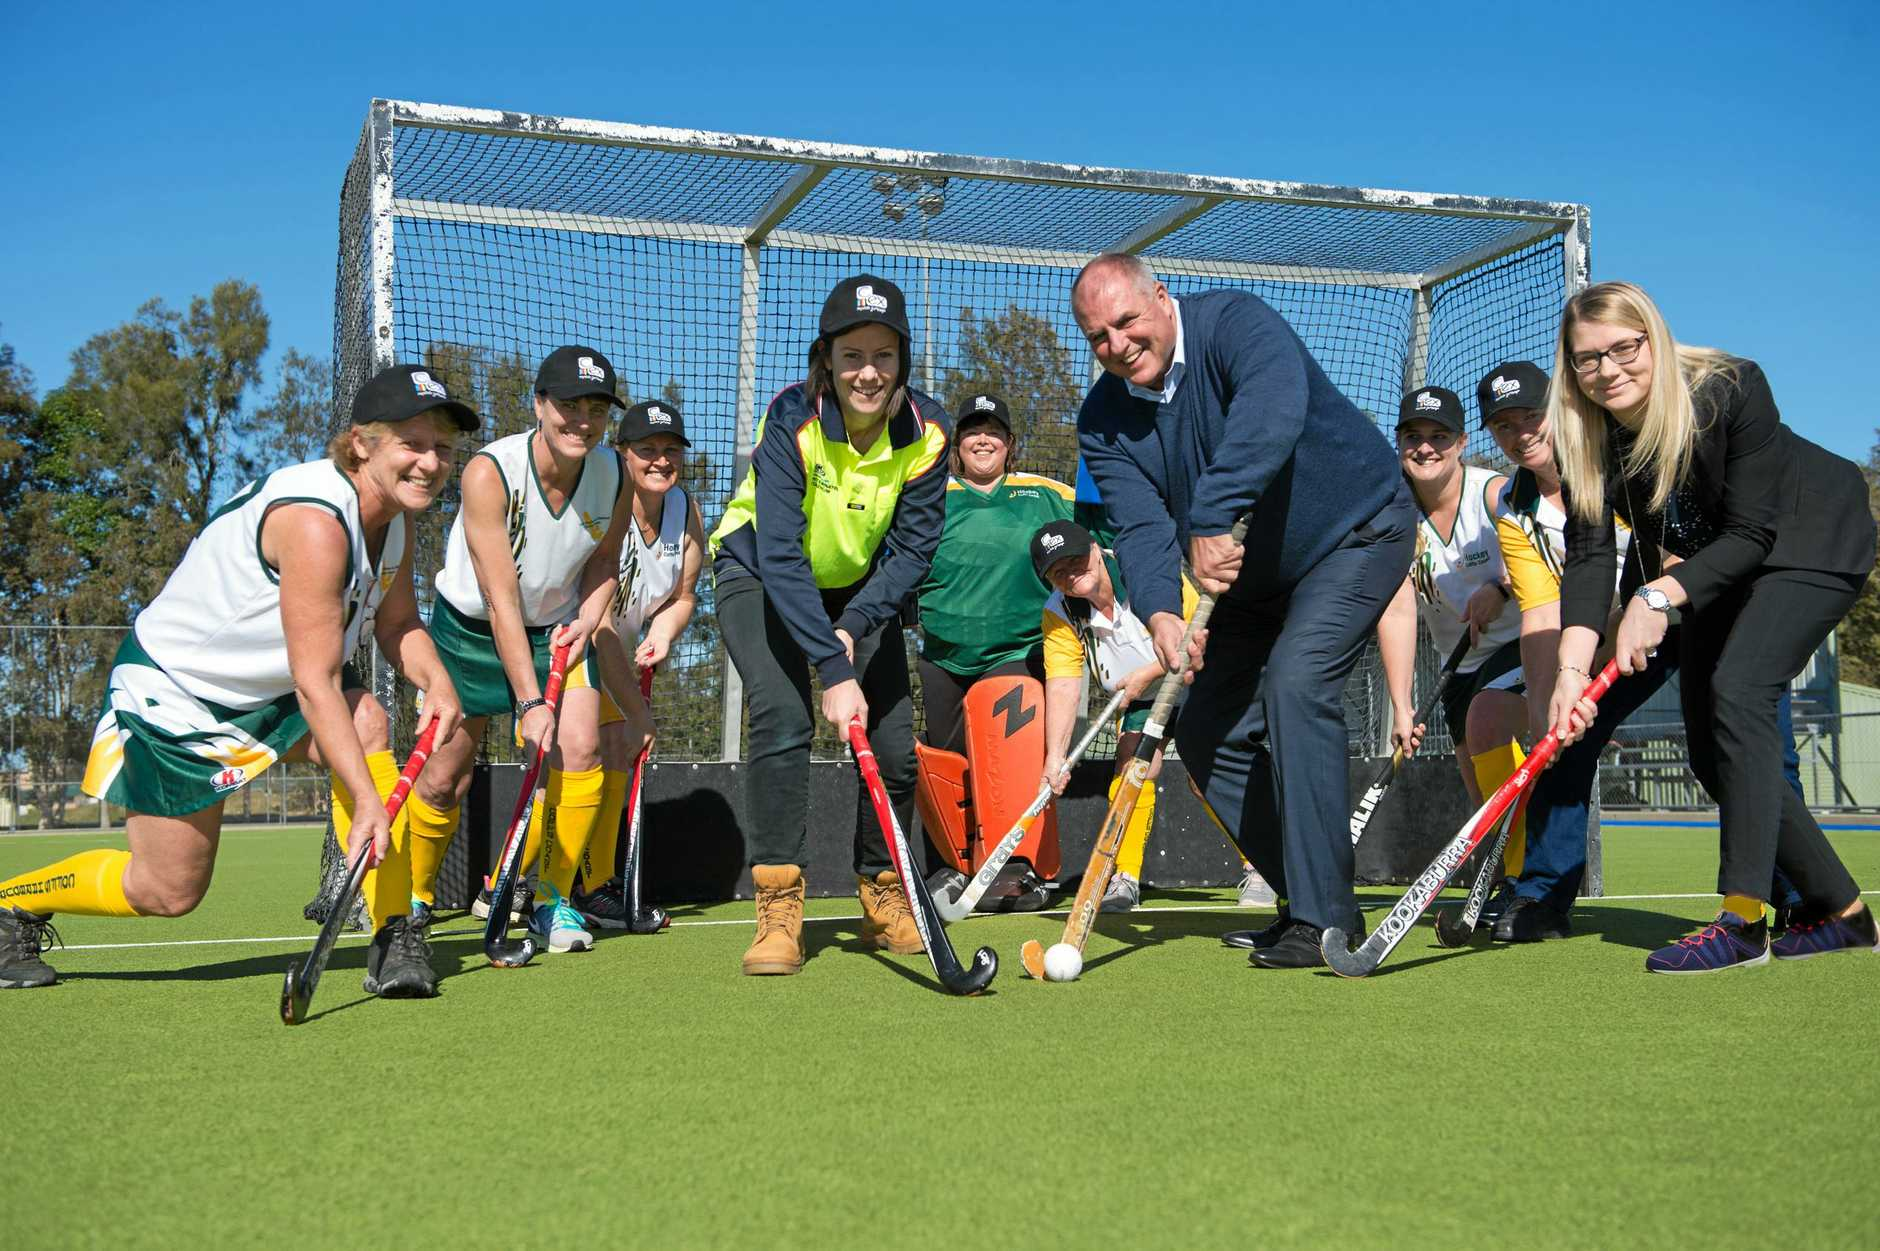 The C.ex Group is sponsoring the State Women's Masters Hockey tournament in Coffs Harbour this weekend. Pictured is Rebecca Ramsay from Coffs Harbour City Council with C.ex Group CEO John Rafferty and C.ex Group Community Relations Manager Sarah Pryor.